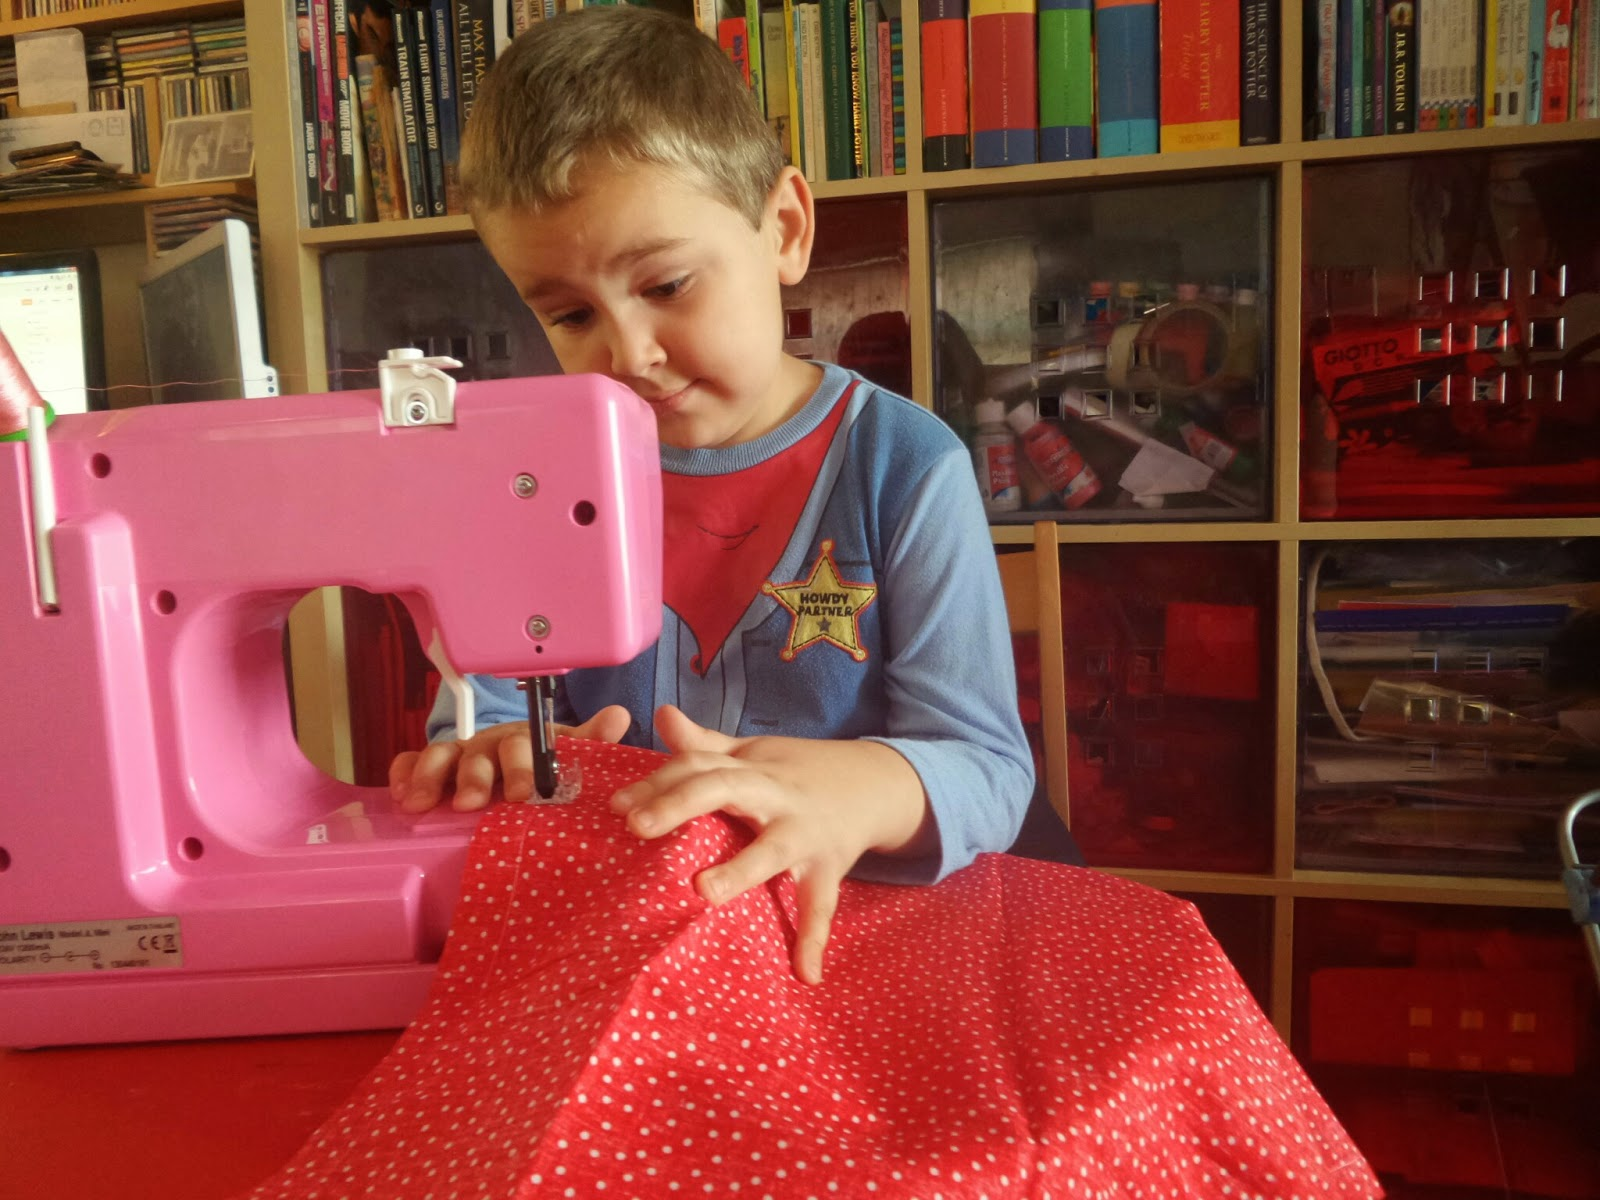 Big Boy confused over the sewing machine